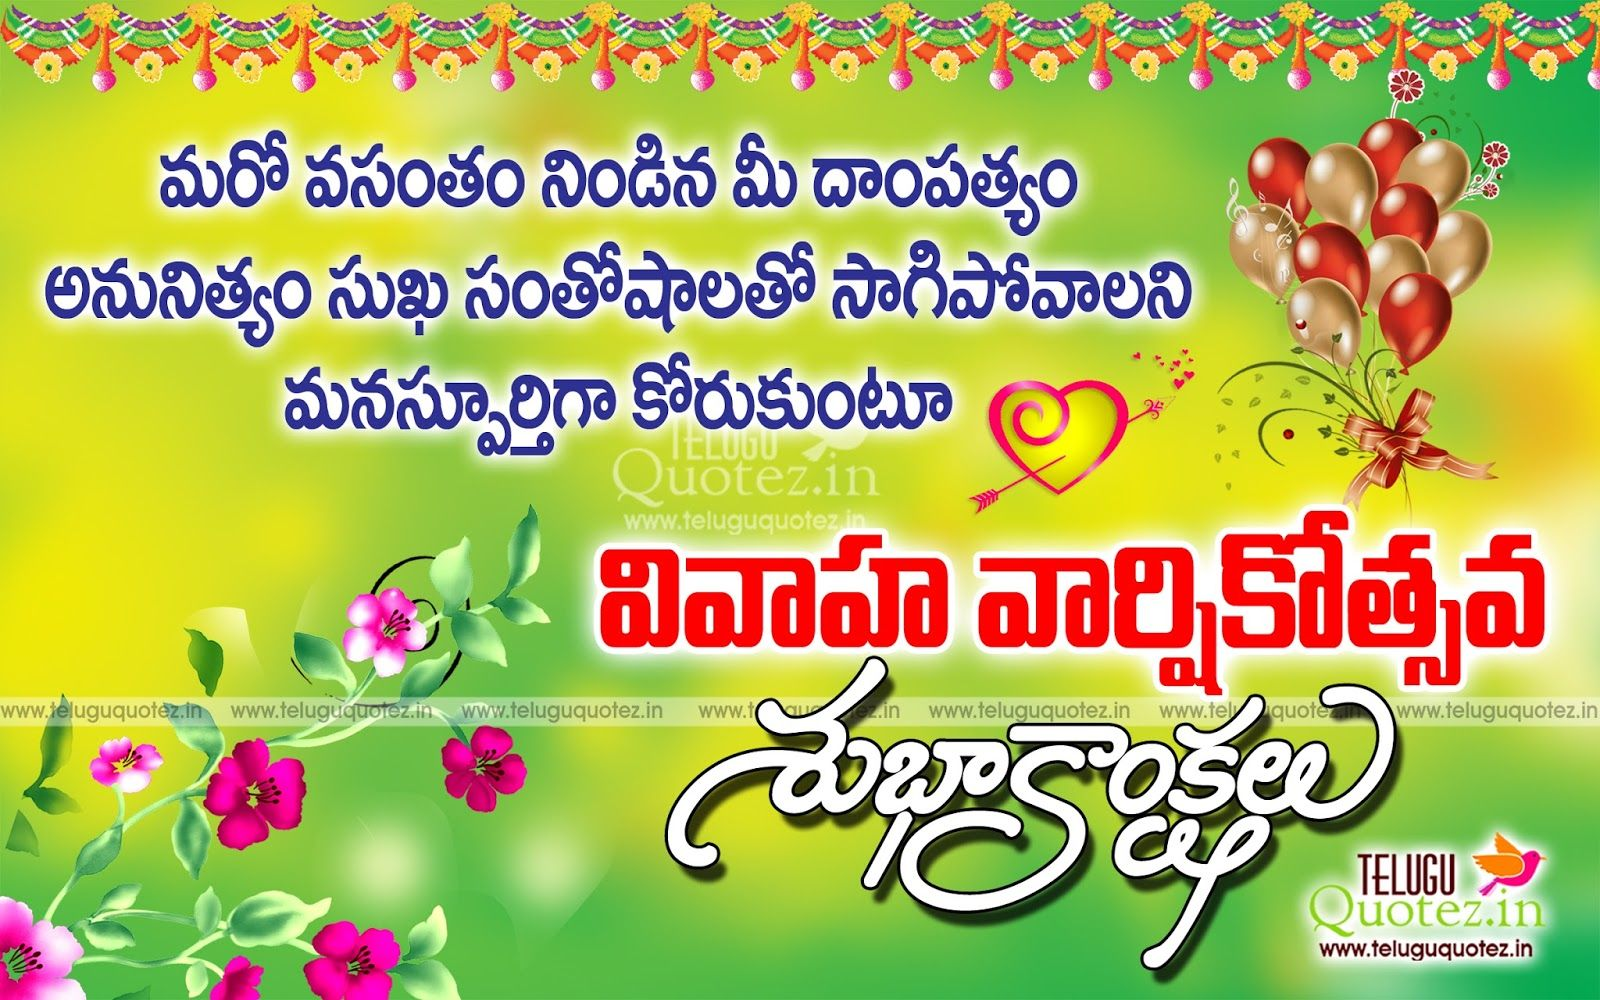 Best Telugu Marriage Anniversary Greetings Wedding Wishes